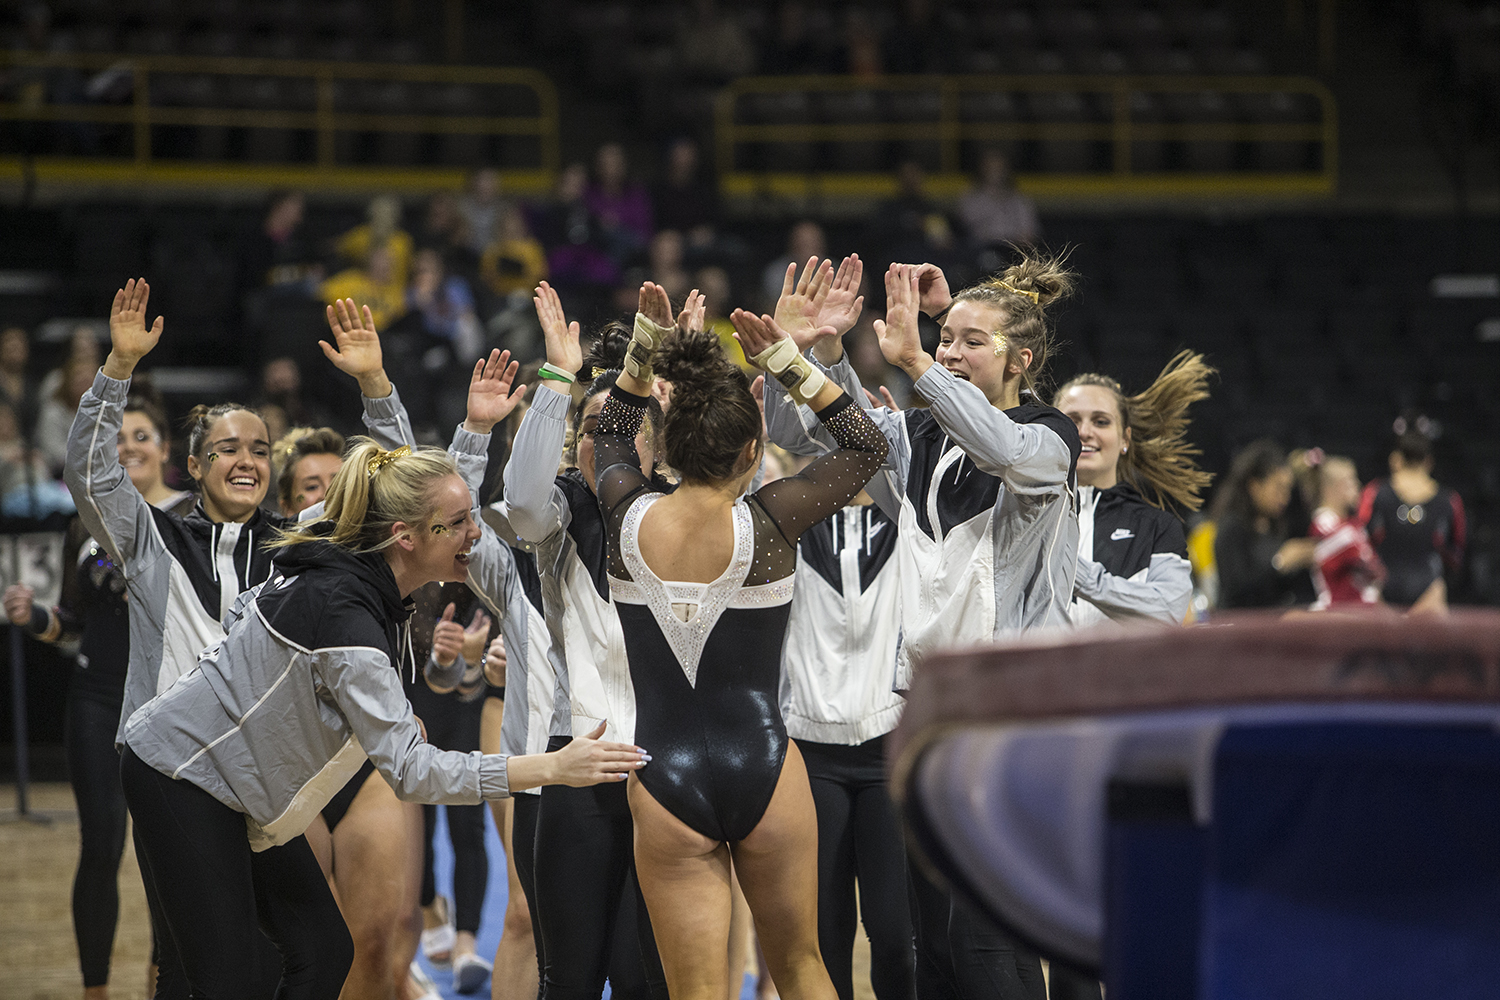 Iowa+gymnast+Bridget+Killian+celebrates+after+her+vault+event+in+a+match+against+Rutgers+on+Saturday%2C+January+26%2C+2019.+The+Hawkeyes+defeated+the+Scarlet+Knights+194.575+to+191.675.+